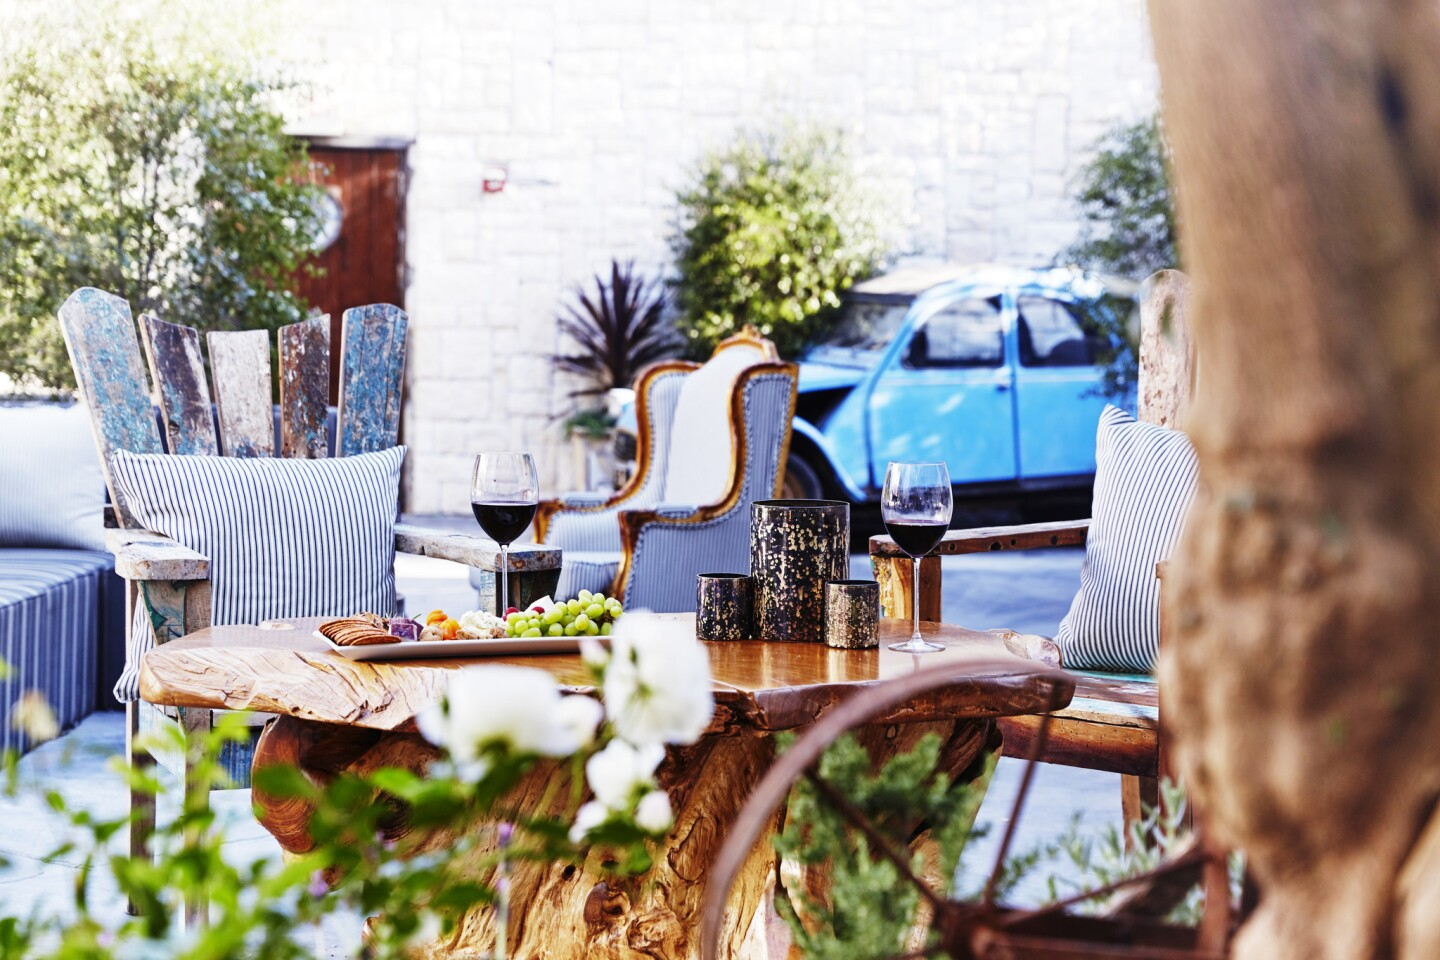 The patio at Le Jardin, a new venue opening this wekeend in Hollywood.